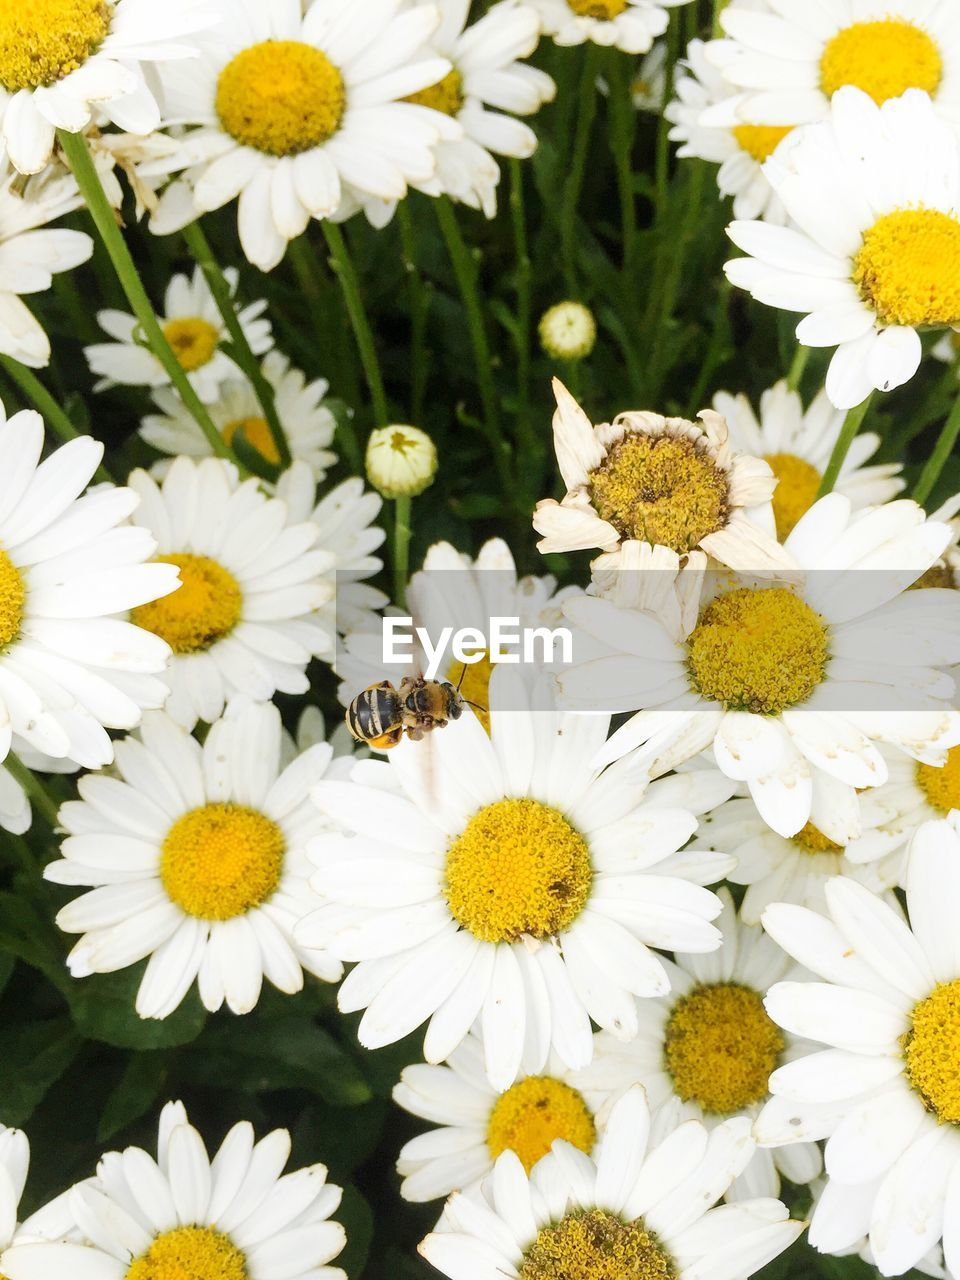 flower, petal, white color, nature, fragility, beauty in nature, flower head, freshness, pollen, growth, insect, yellow, blooming, plant, animal themes, bee, no people, day, springtime, outdoors, animals in the wild, close-up